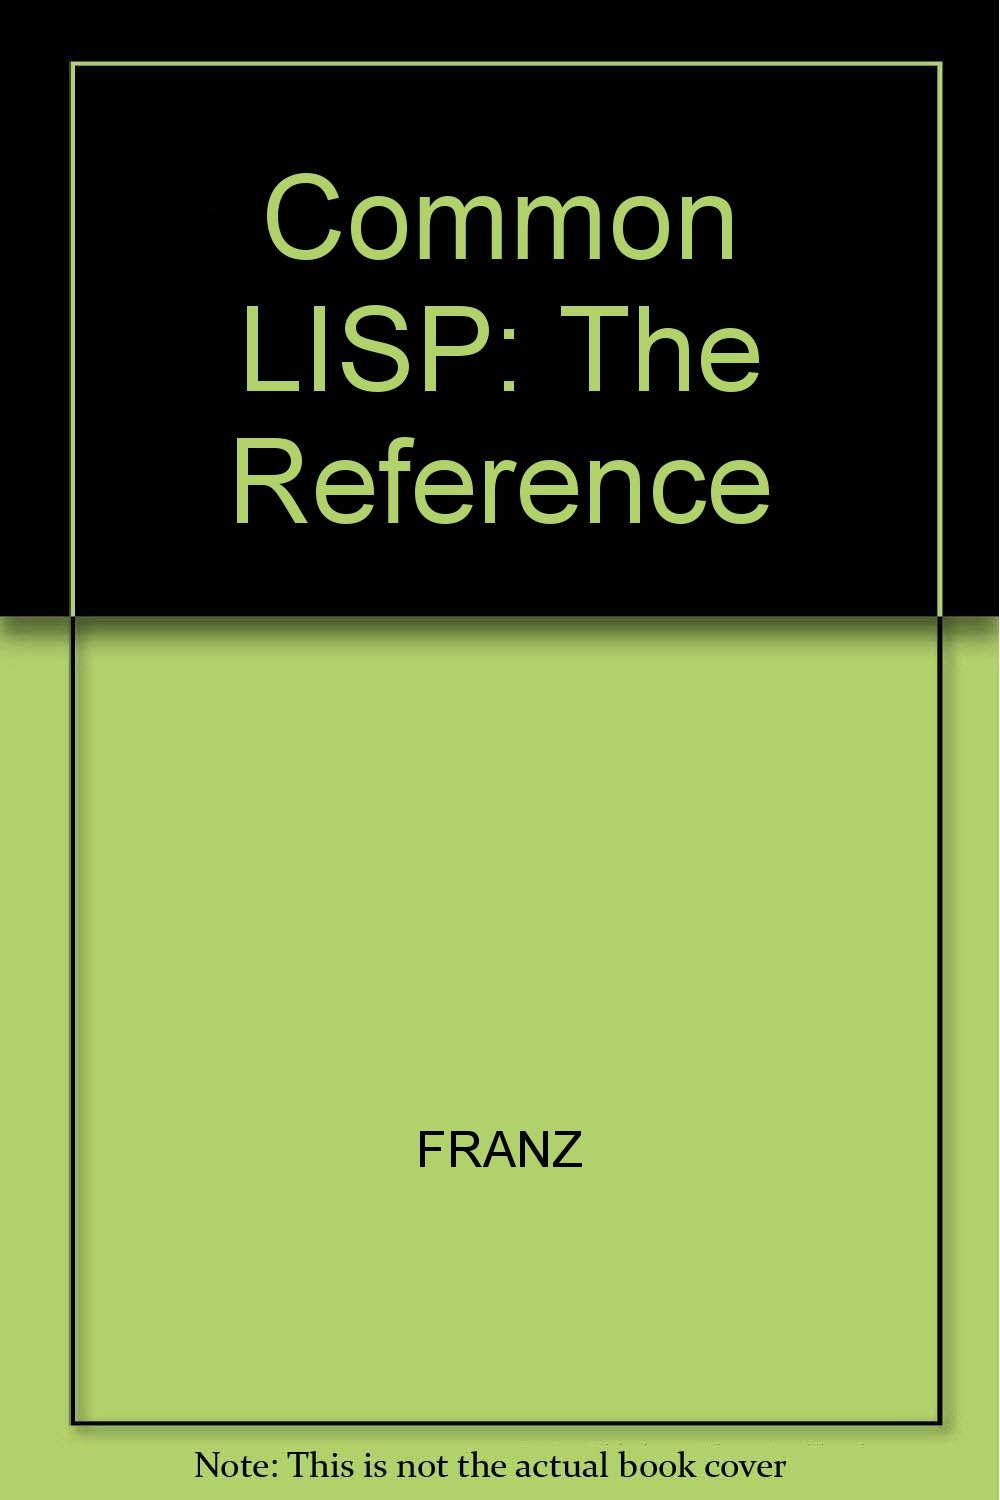 Common LISP: The Reference: Amazon co uk: FRANZ